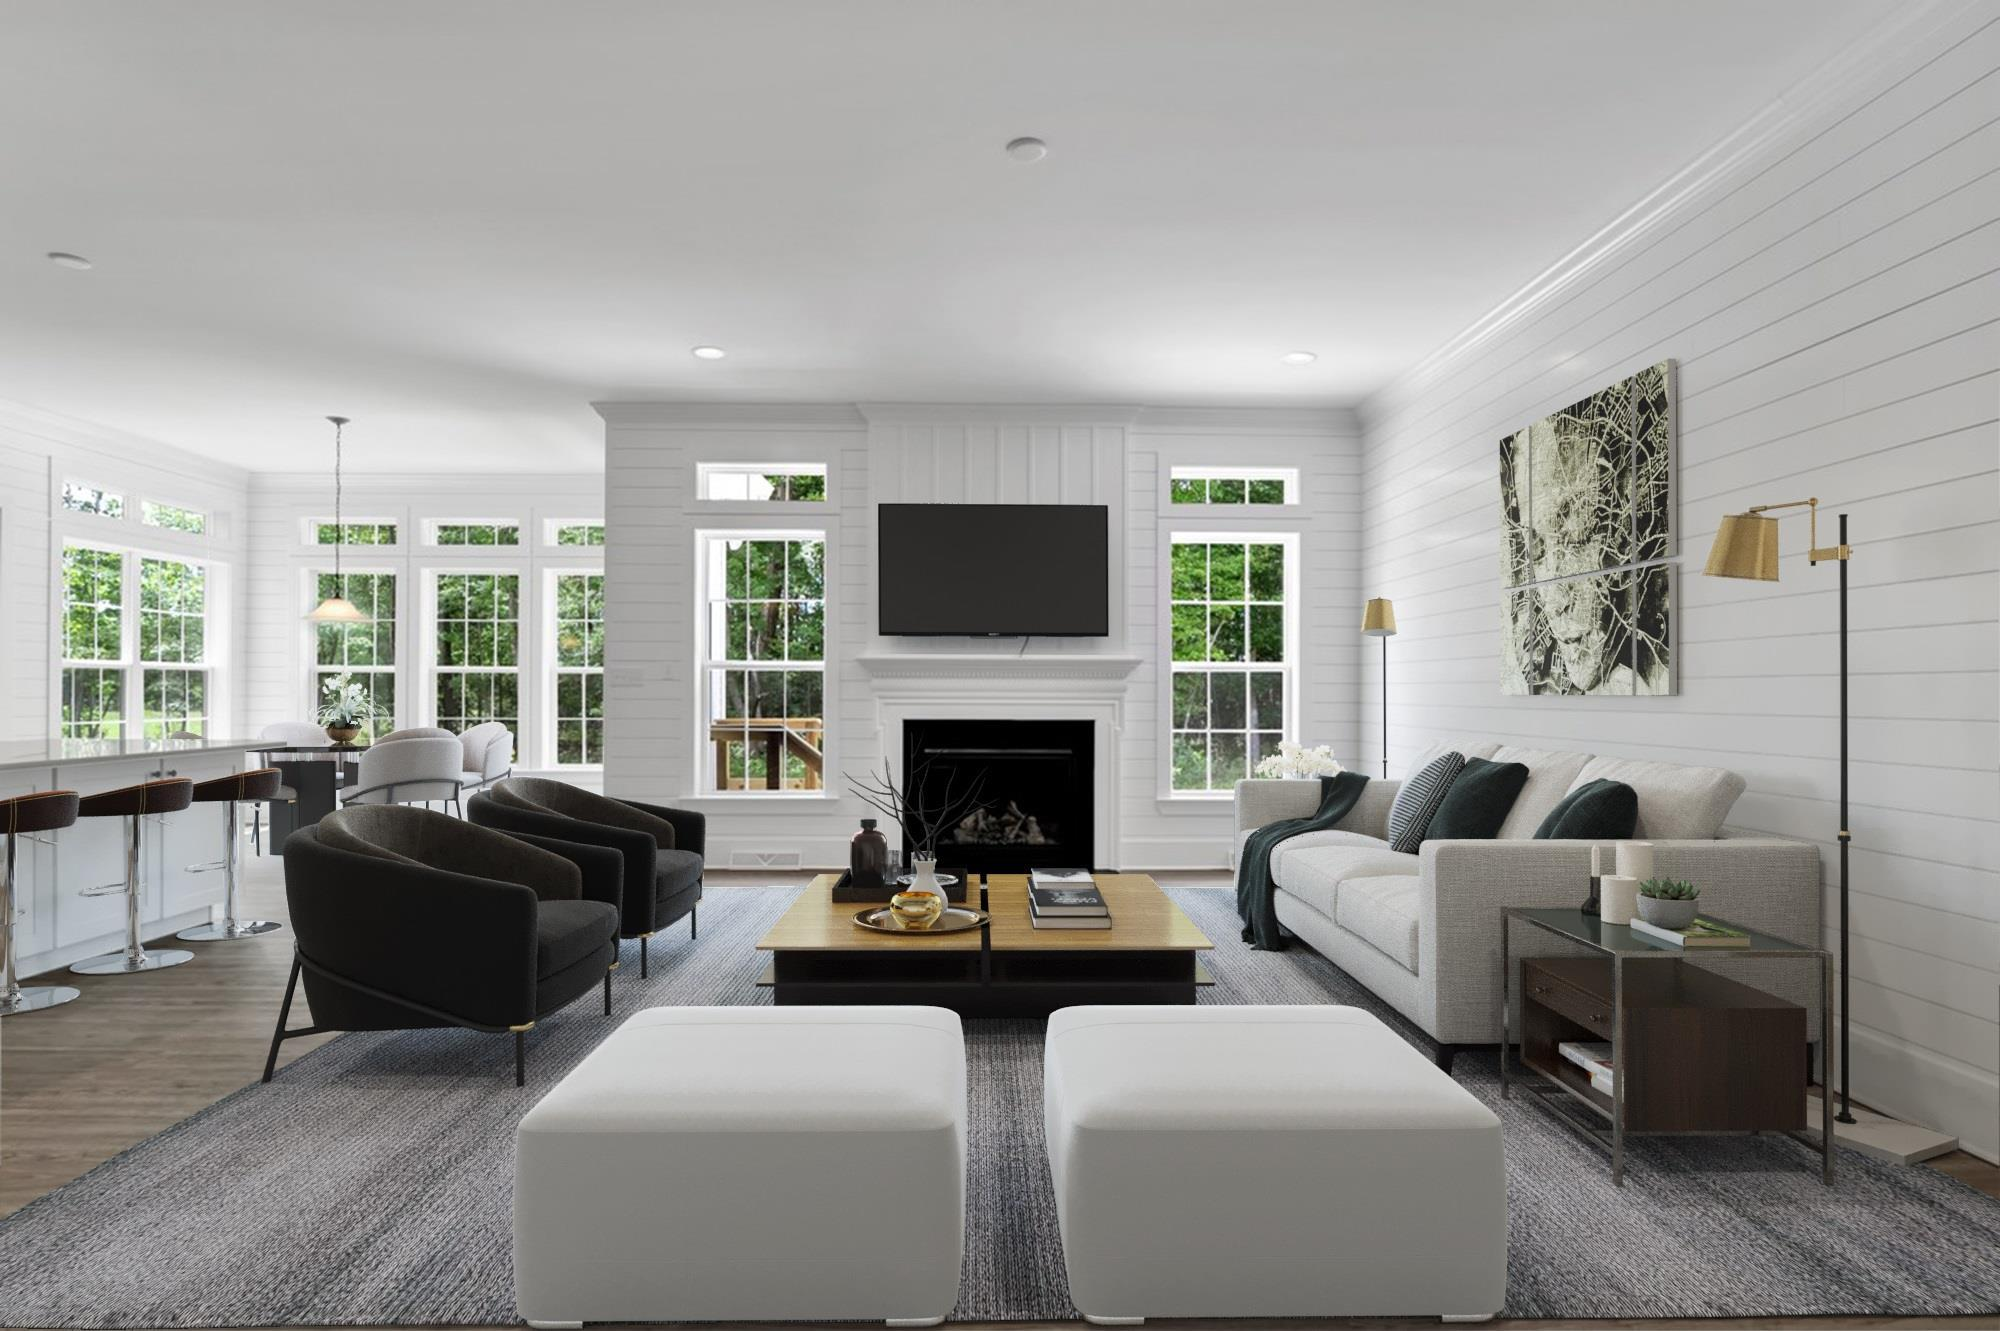 Living Area featured in The Ocean View By Ashburn Homes in Sussex, DE